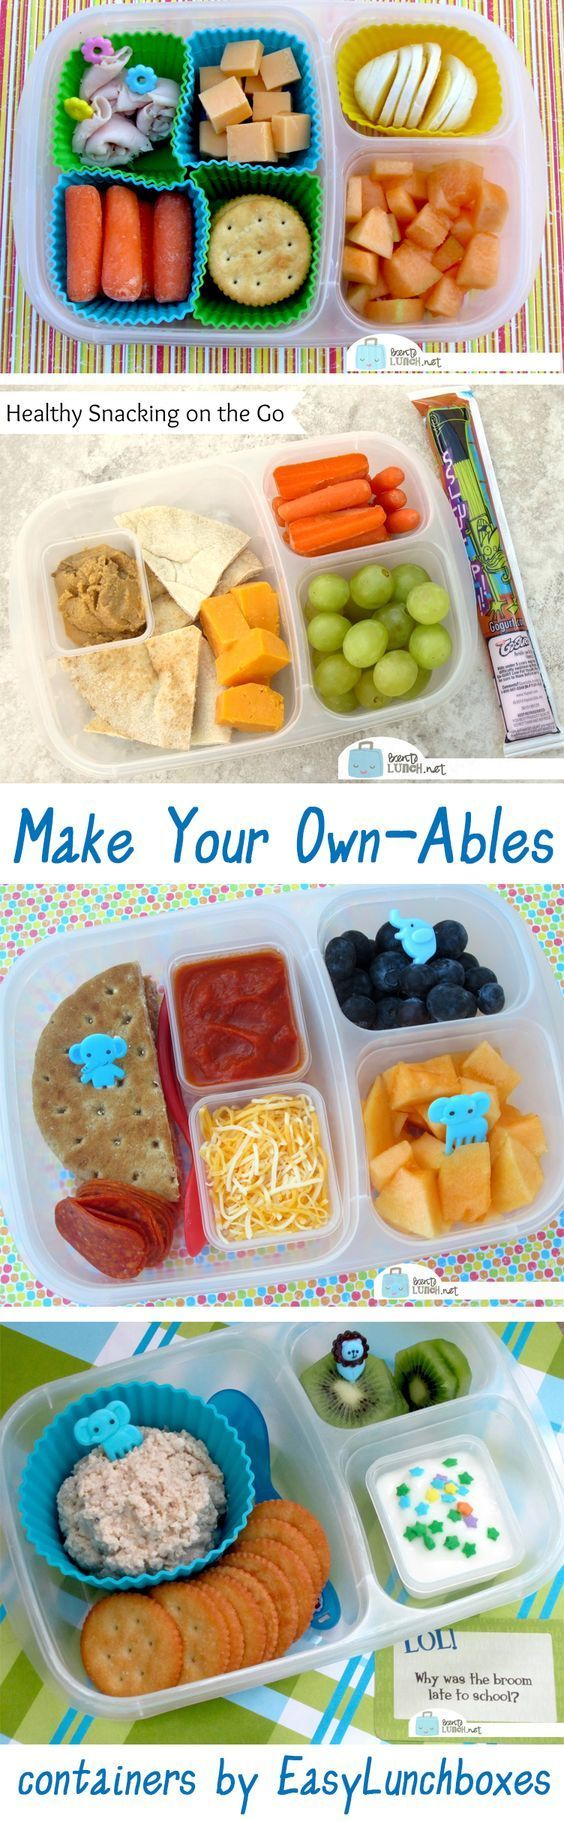 It's easy (and healthier) to make your own version of the -able lunch! Packed in /easylunchboxes/